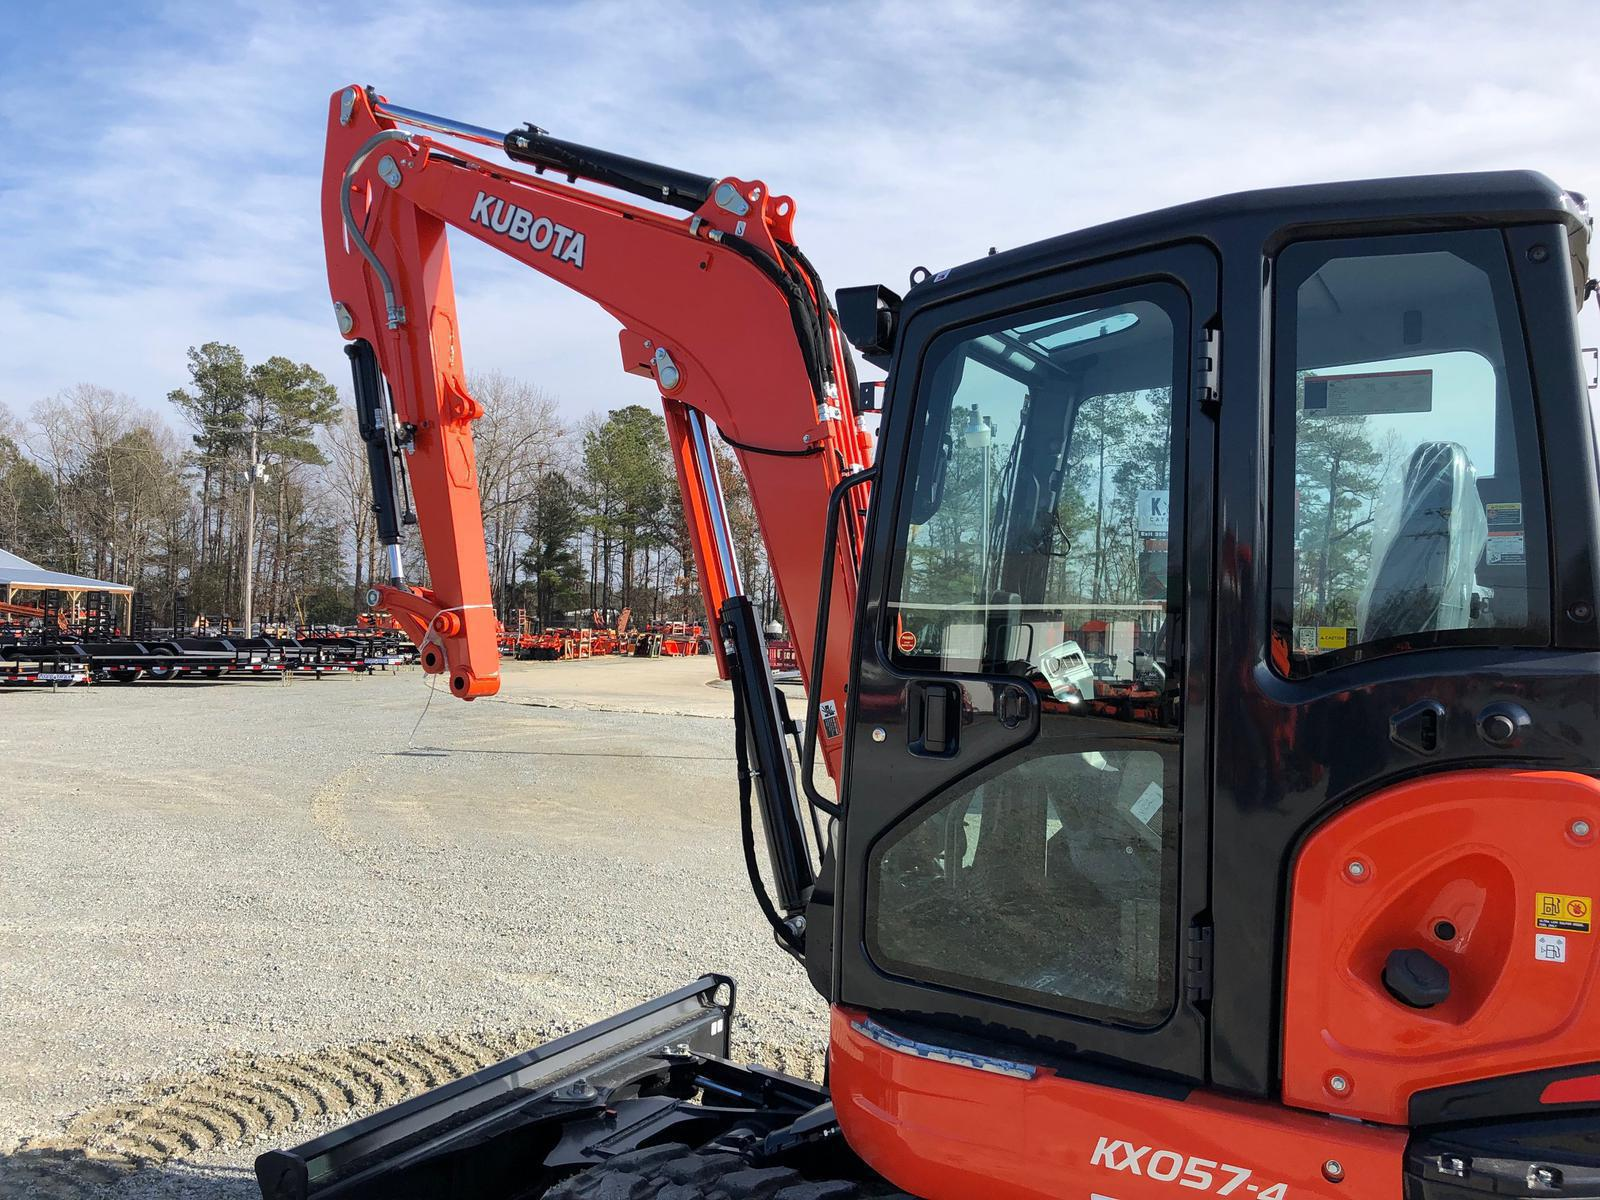 2019 Kubota KX057-4 Compact with Angle Blade for sale in